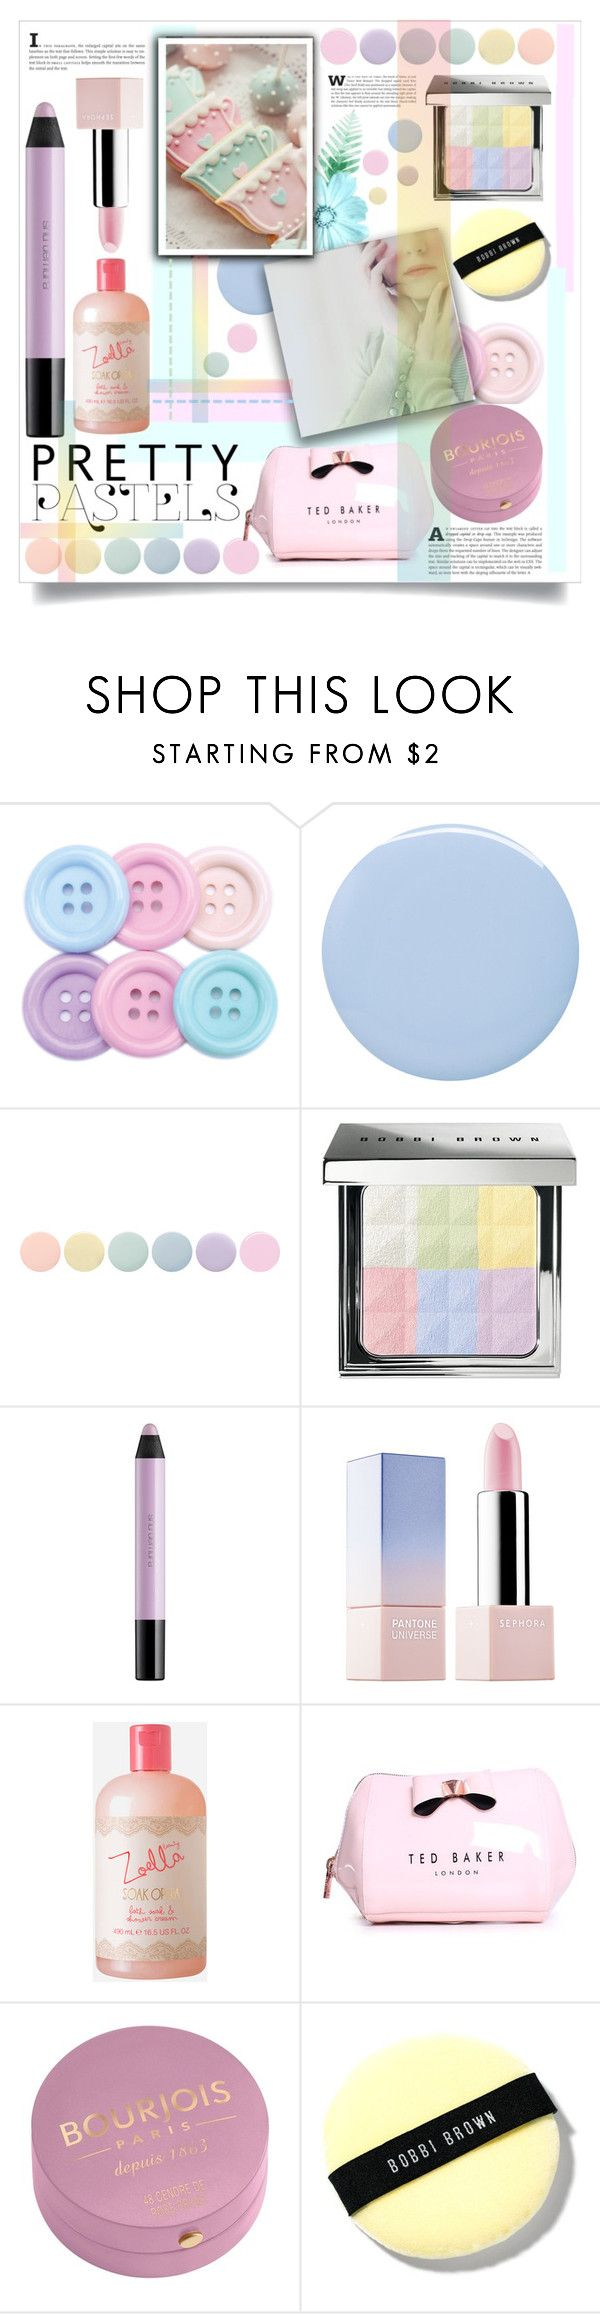 """""""Pretty Pastel!"""" by patria ❤ liked on Polyvore featuring beauty, Deborah Lippmann, Bobbi Brown Cosmetics, shu uemura, Sephora Collection, Zoella Beauty, Ted Baker, Bourjois, Beauty and makeup"""